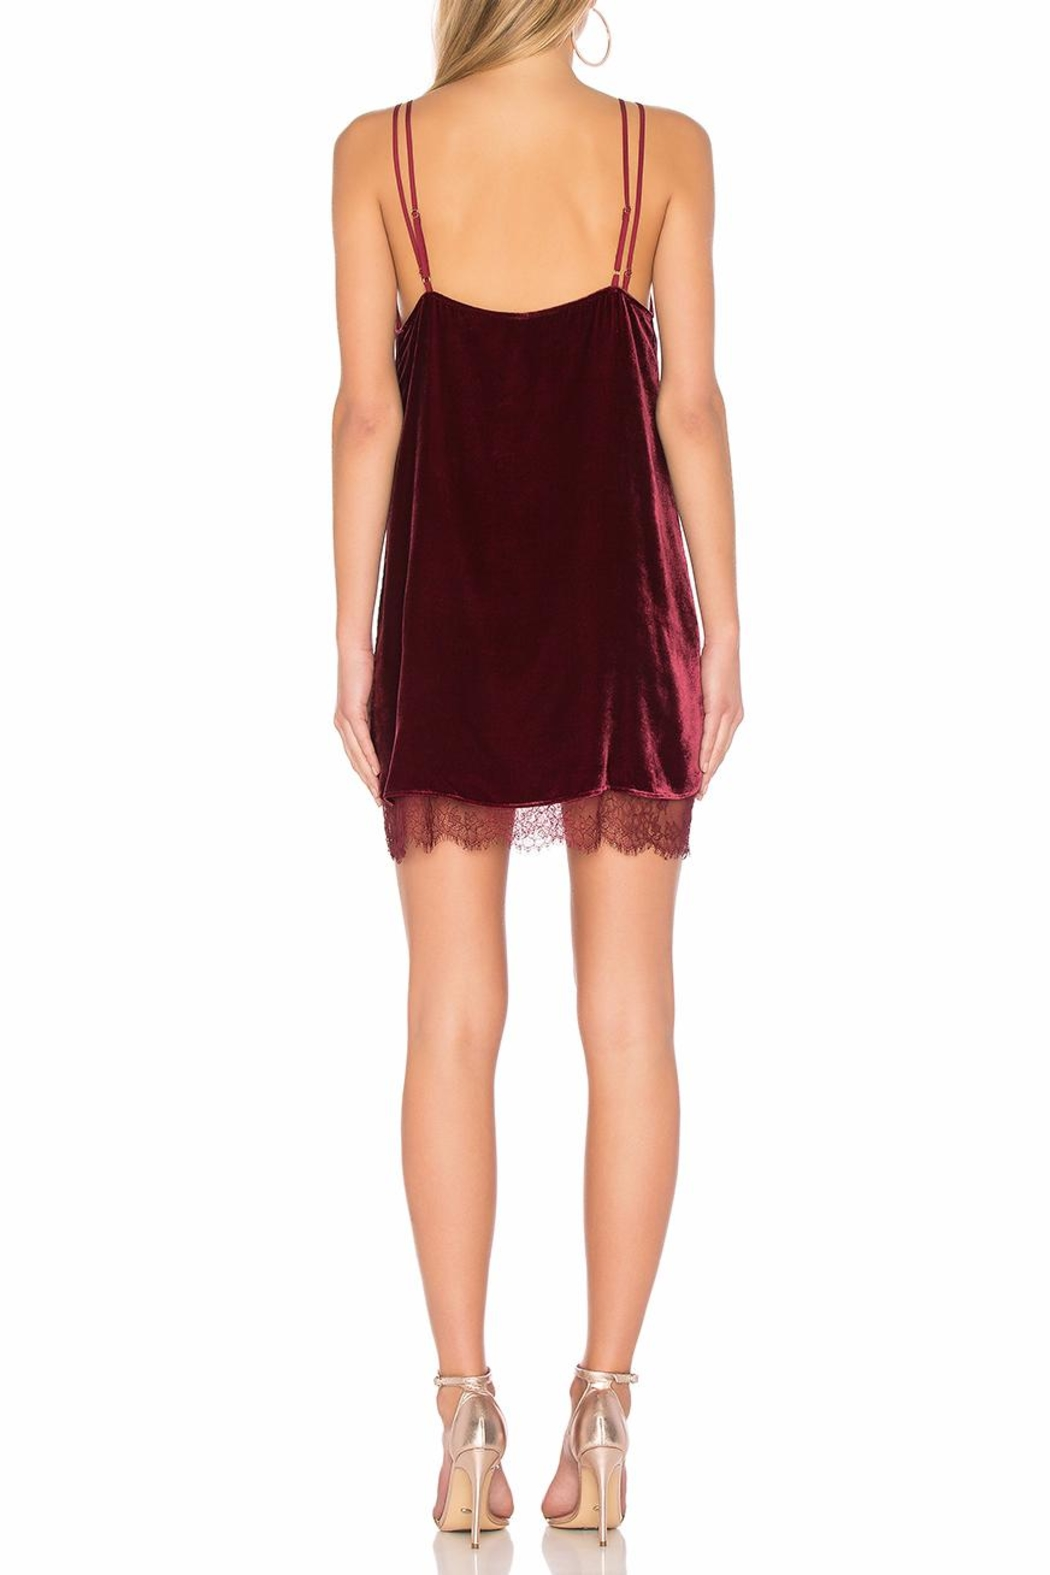 Cami NYC Burgundy Velvet Dress - Side Cropped Image